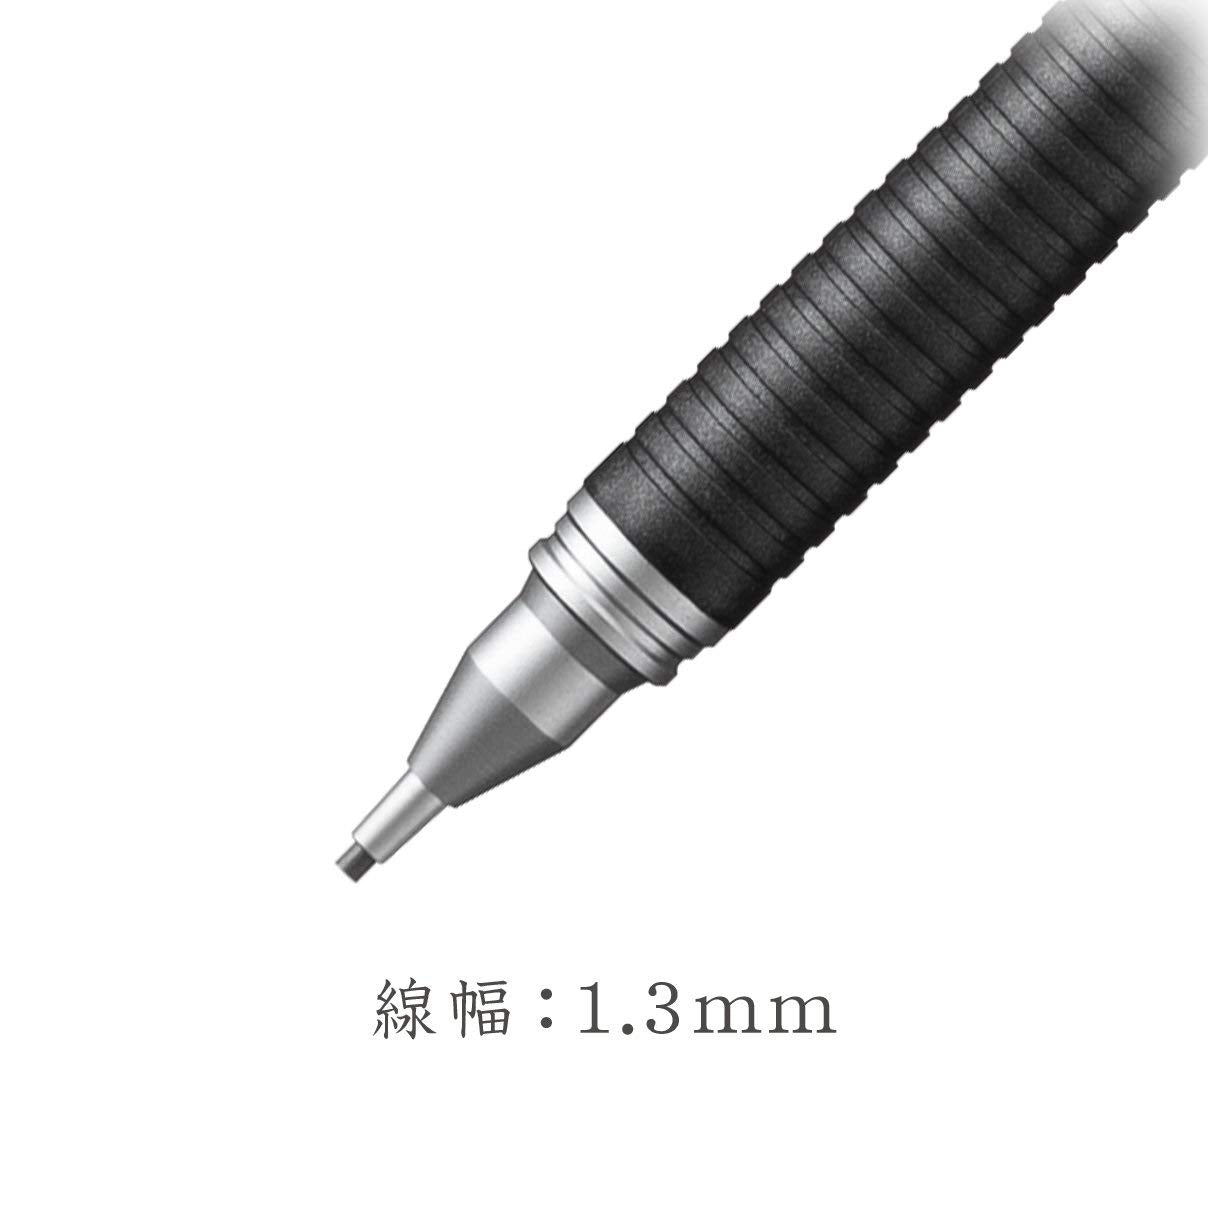 Staedtler Mechanical Pencil, 1.3mm (925 13)